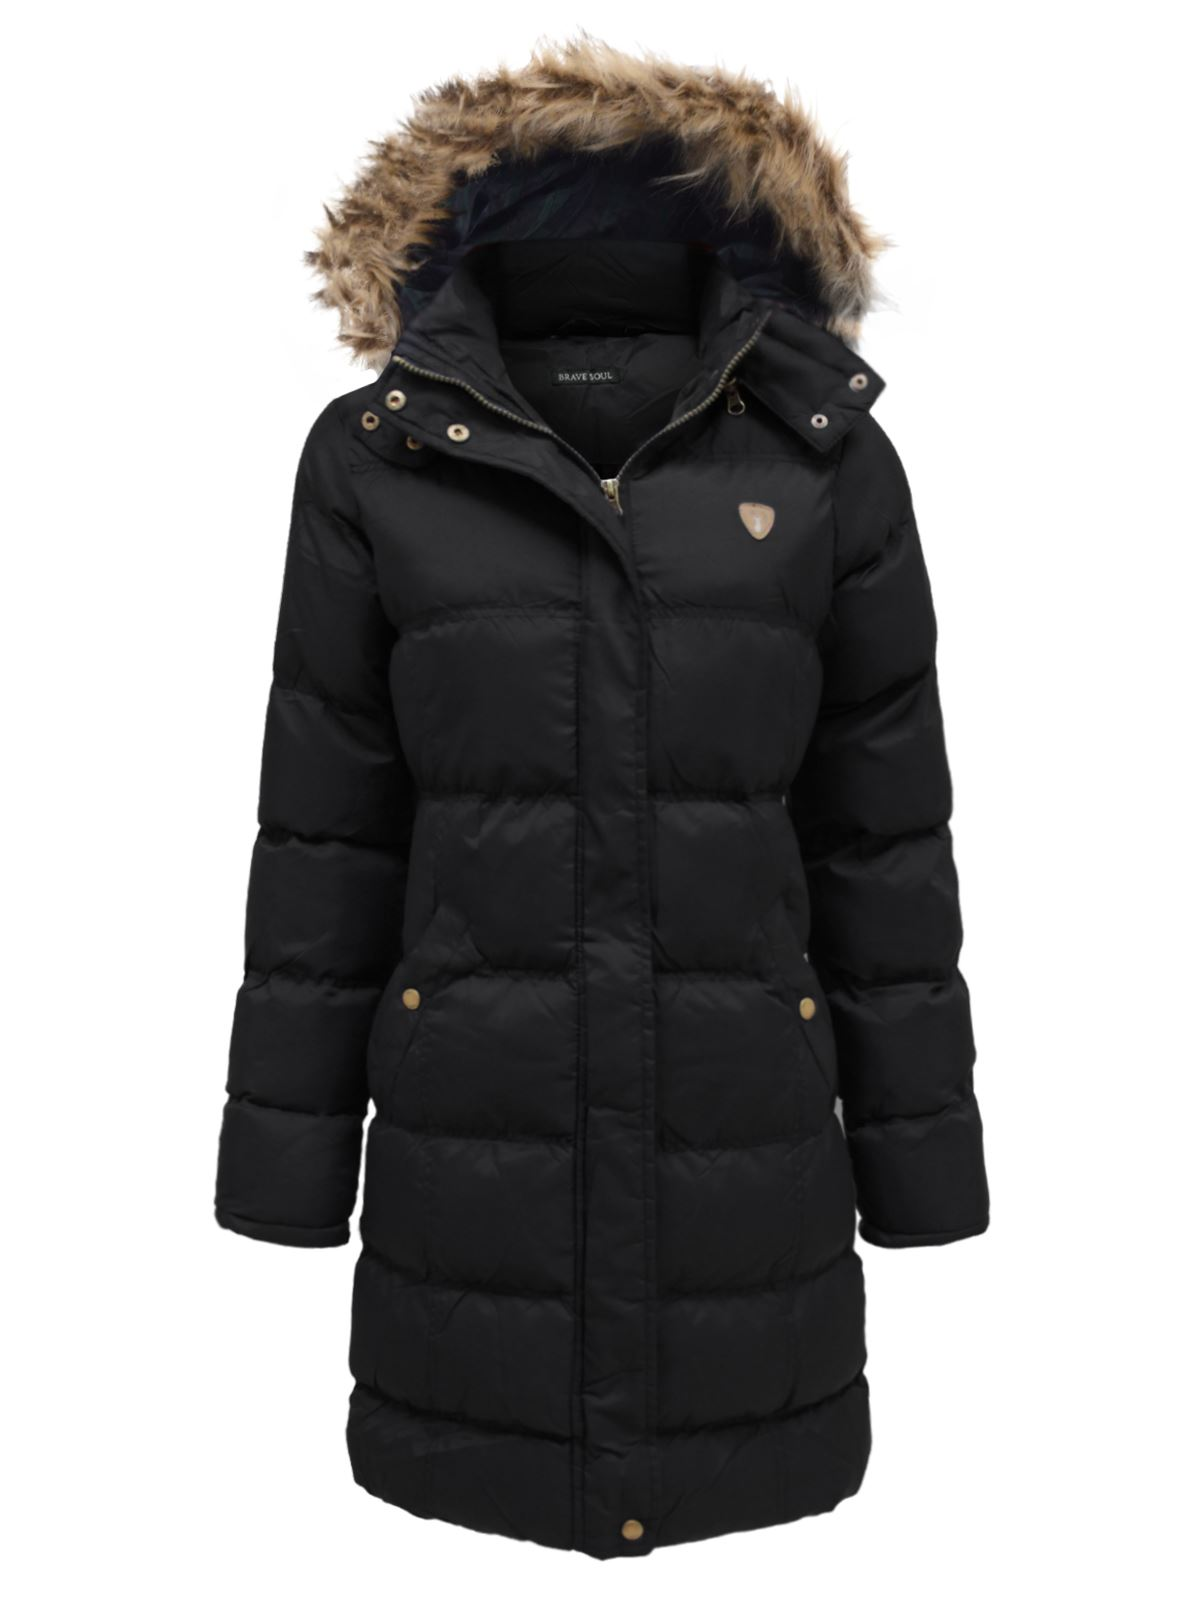 Ladies Fur Hooded Padded Quilted Puffer Long Parka Jacket Womens ... : quilted ladies coat - Adamdwight.com